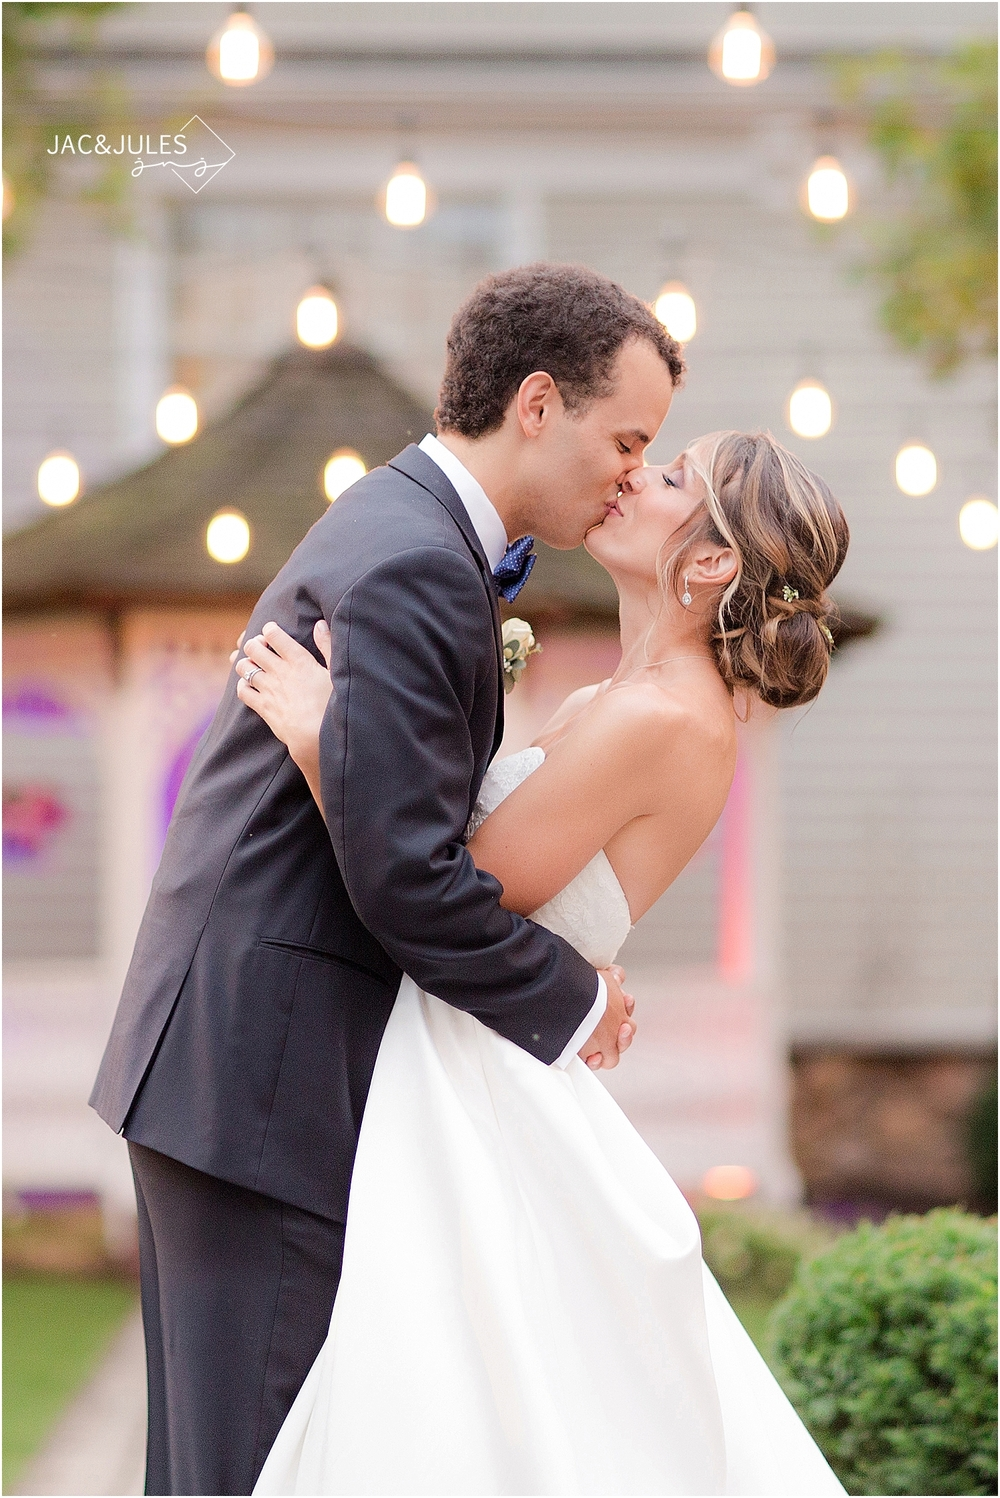 jacnjules photographs wedding portraits at olde mill inn i basking ridge nj